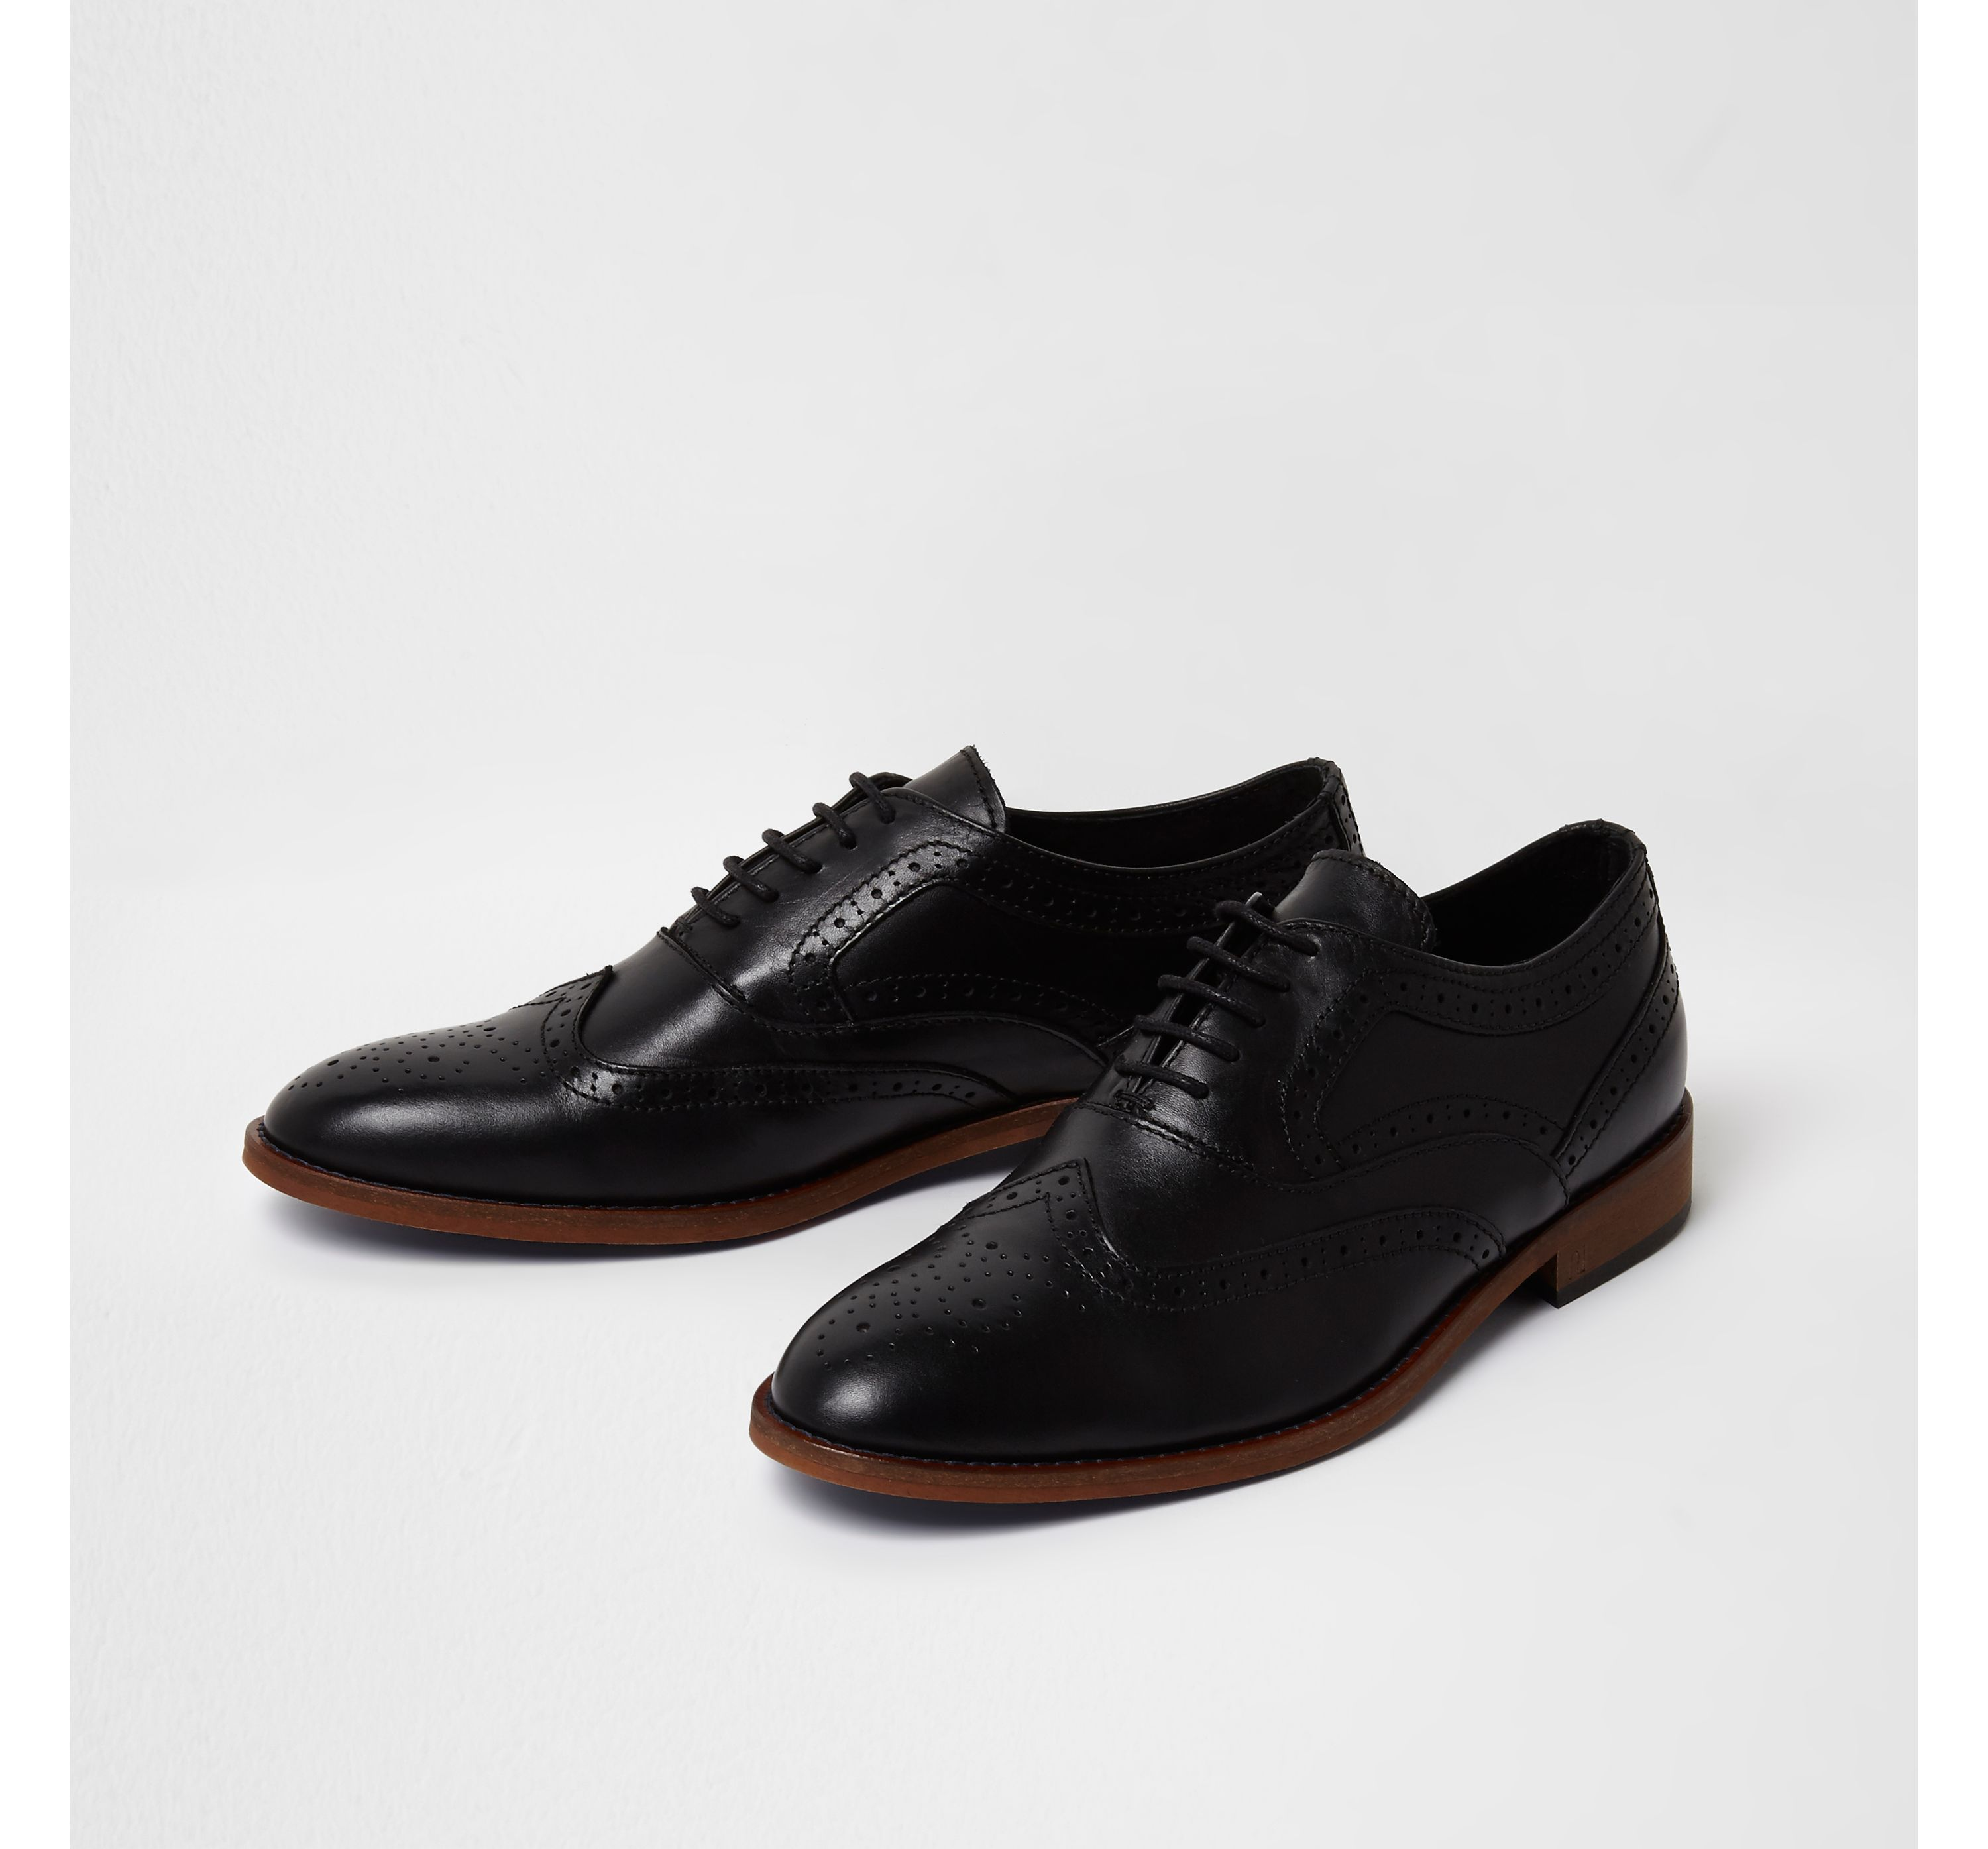 River Island Mens Black leather lace-up brogue oxford shoes